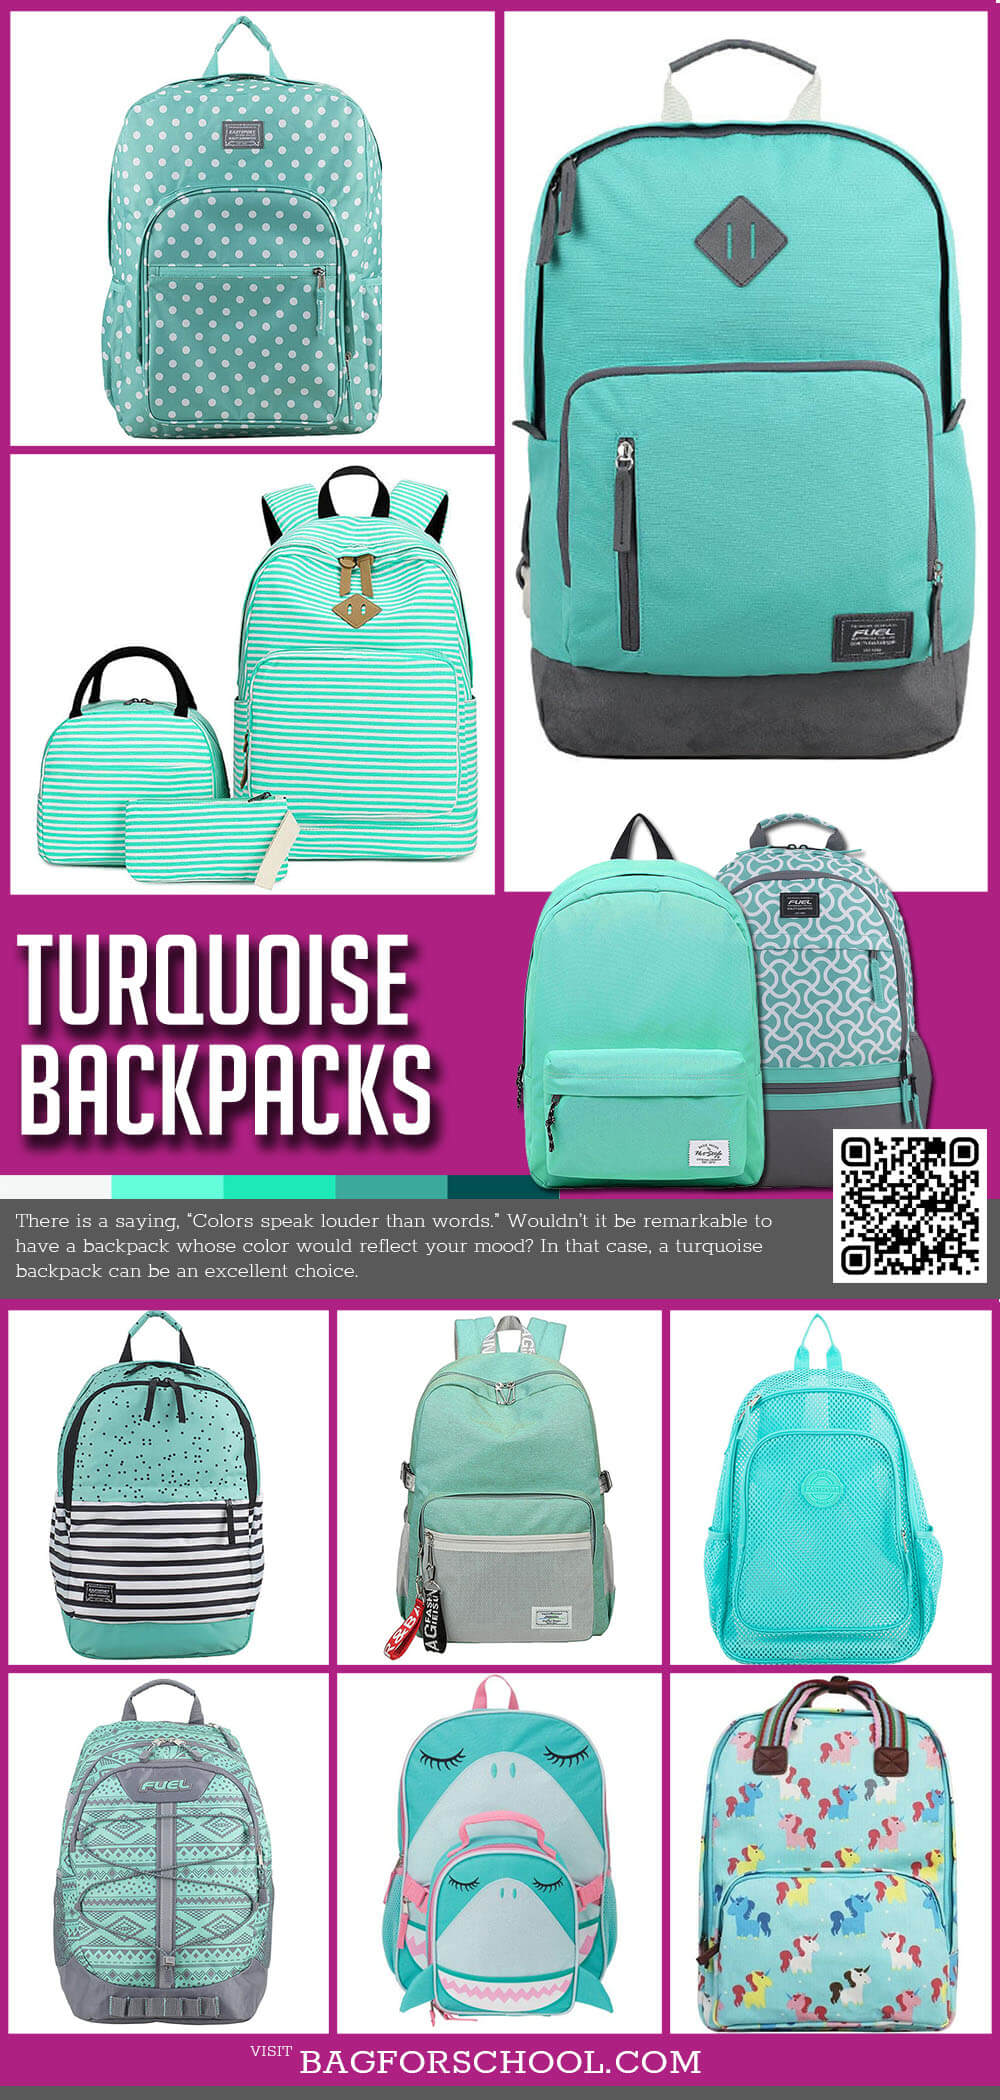 Turquoise Backpacks